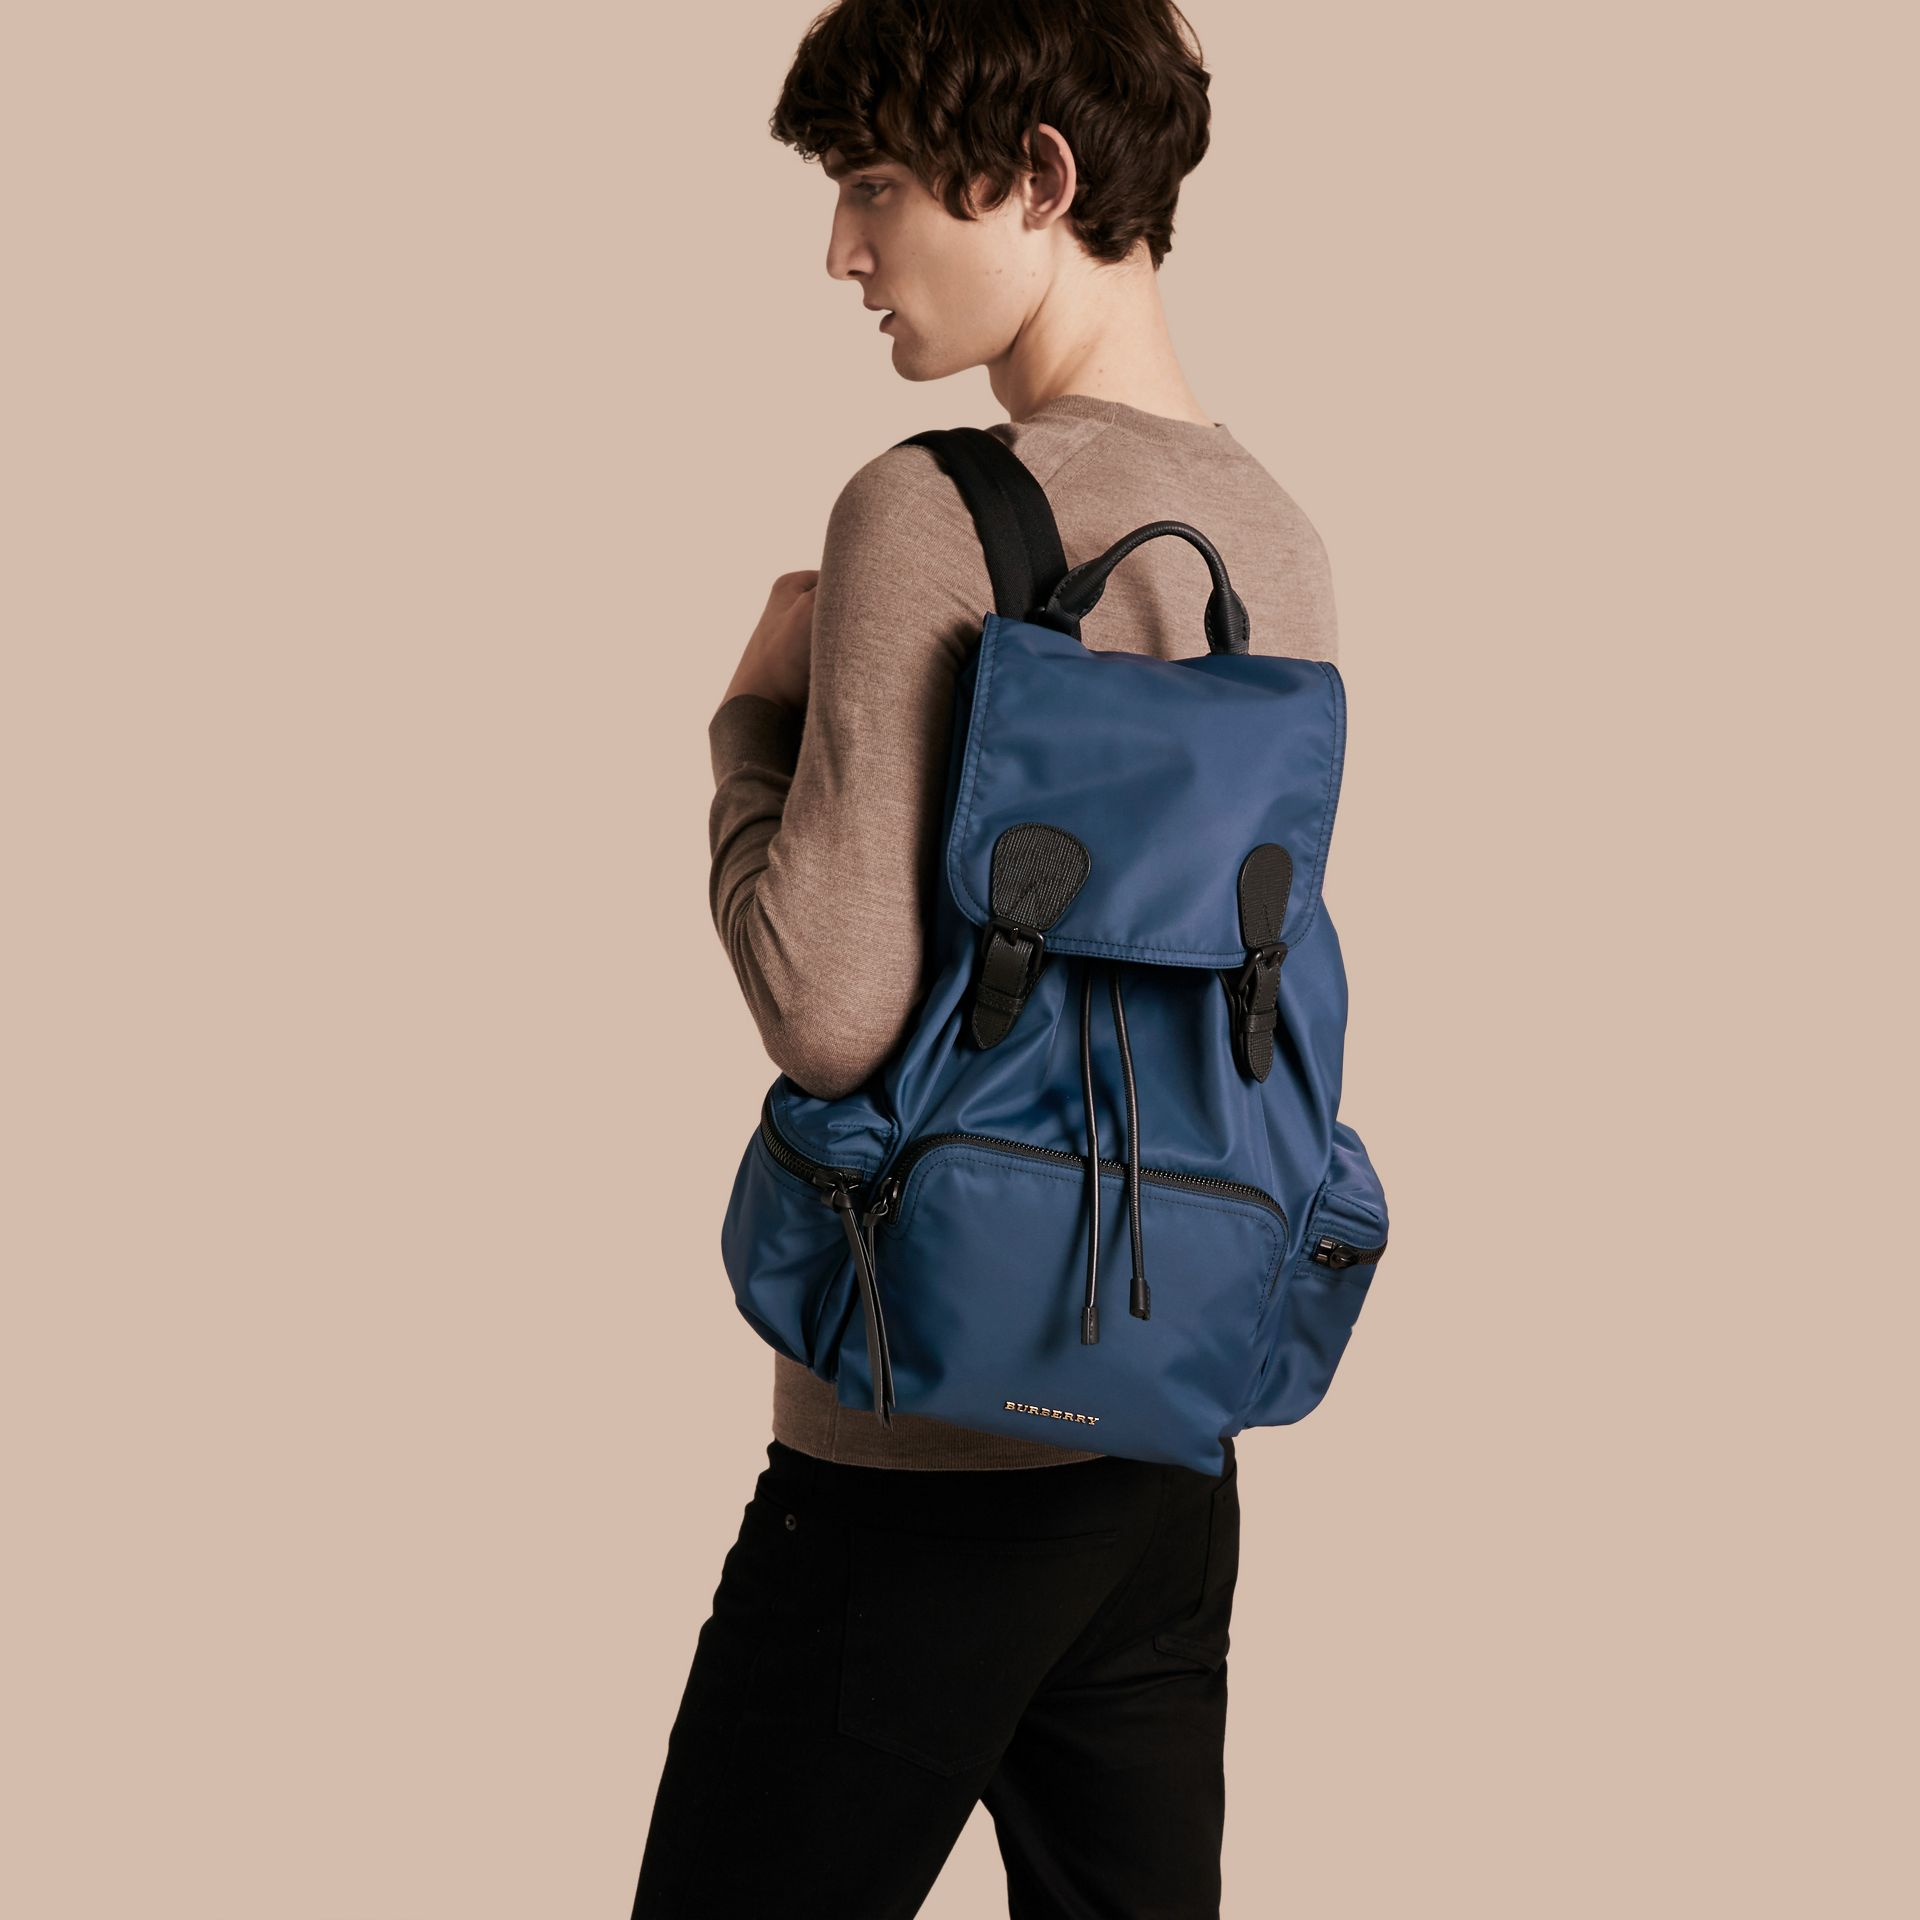 Steel blue The Large Rucksack in Technical Nylon and Leather Steel Blue - gallery image 3